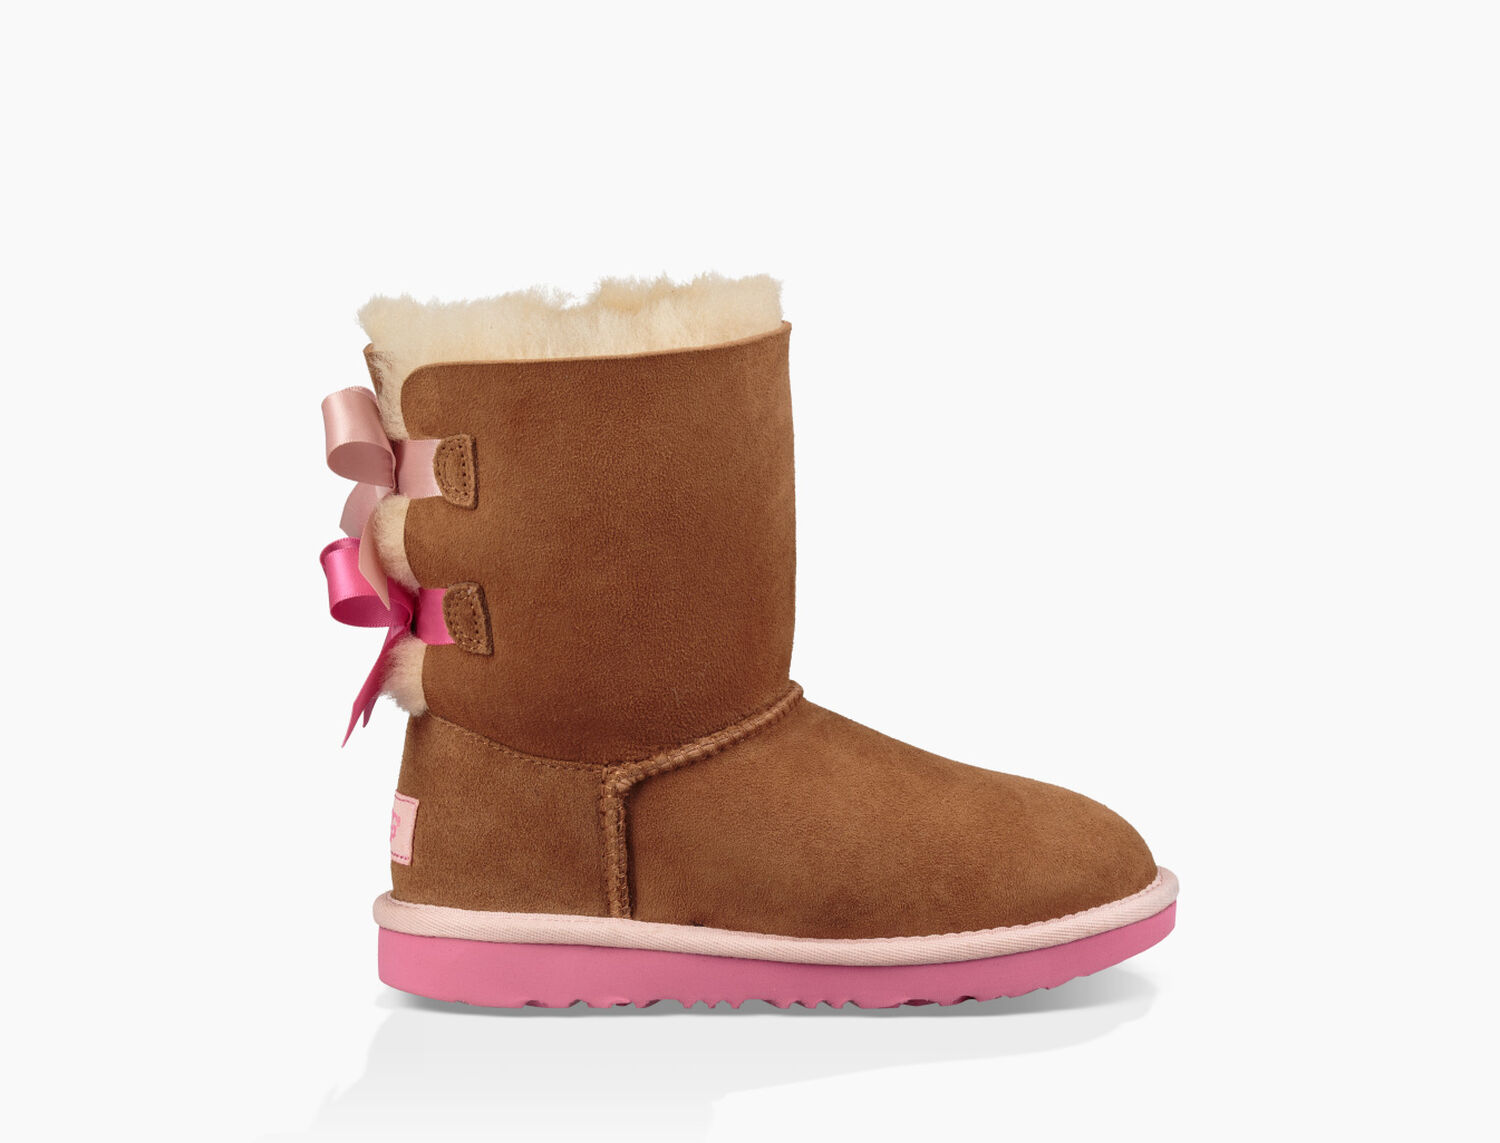 cc4e38517f2 Kids' Share this product Bailey Bow II Boot